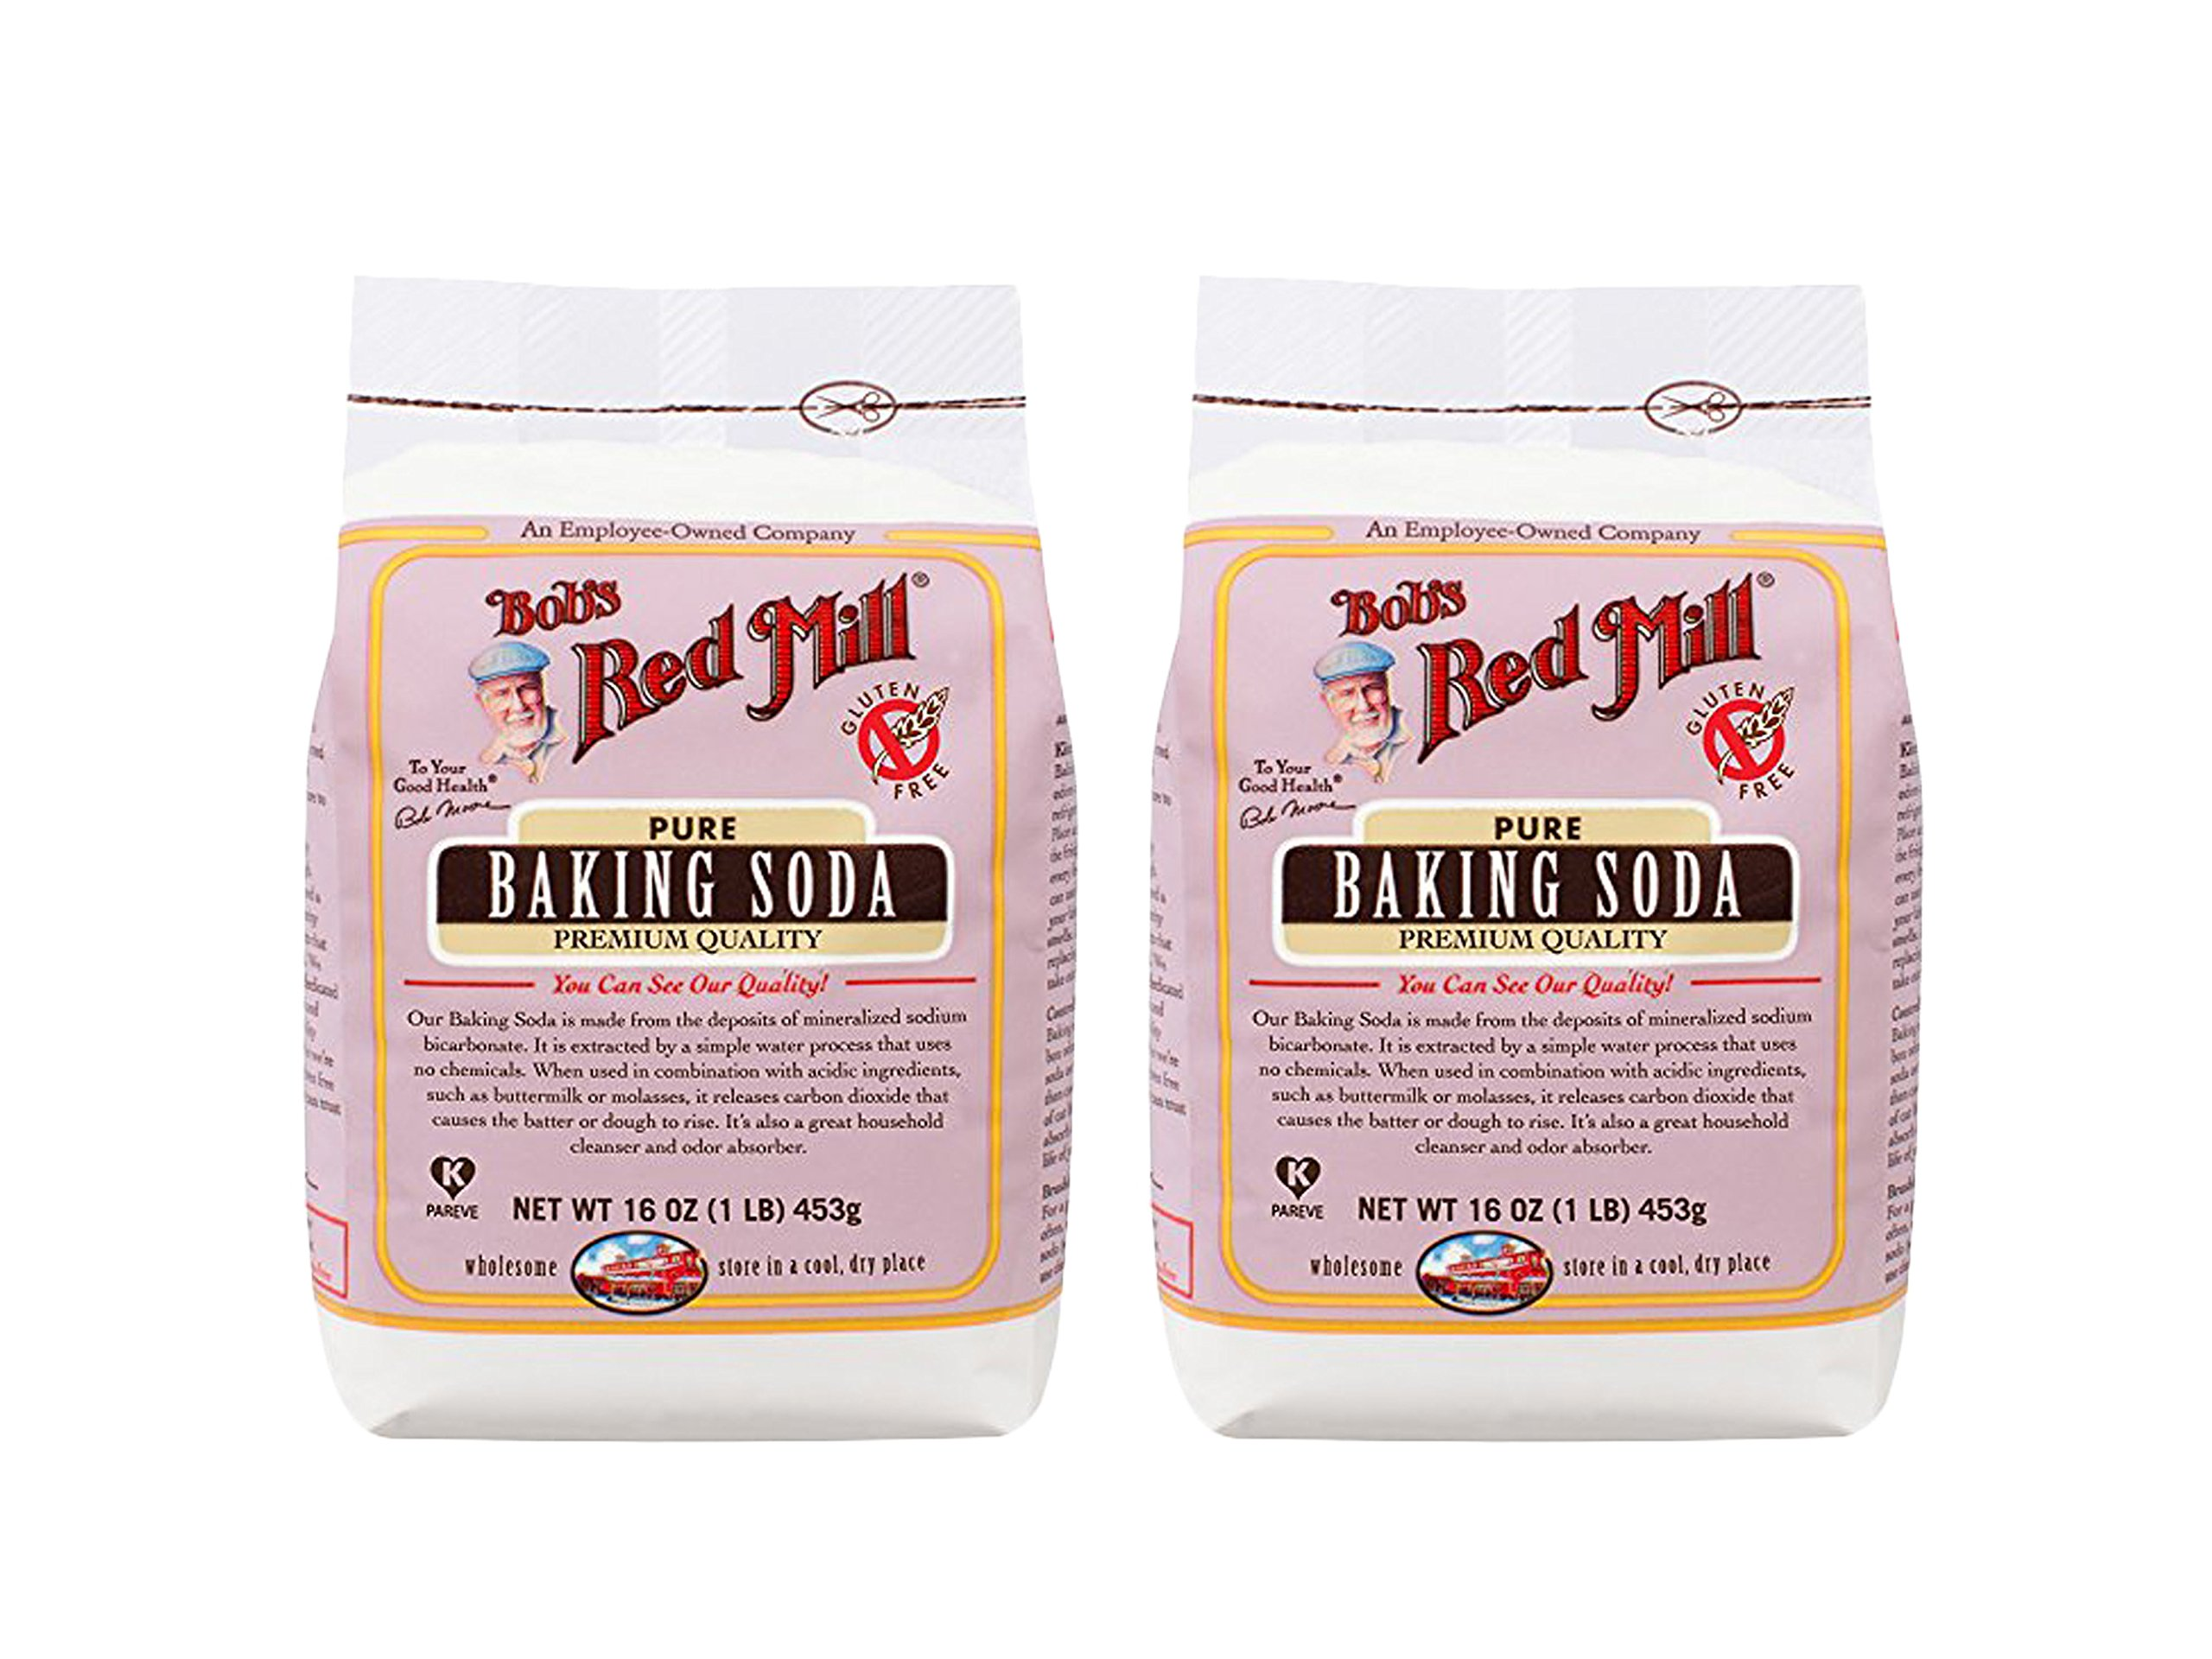 Set of 2 Bob's Red Mill Baking Soda, 16 Ounce bundled by Maven Gifts